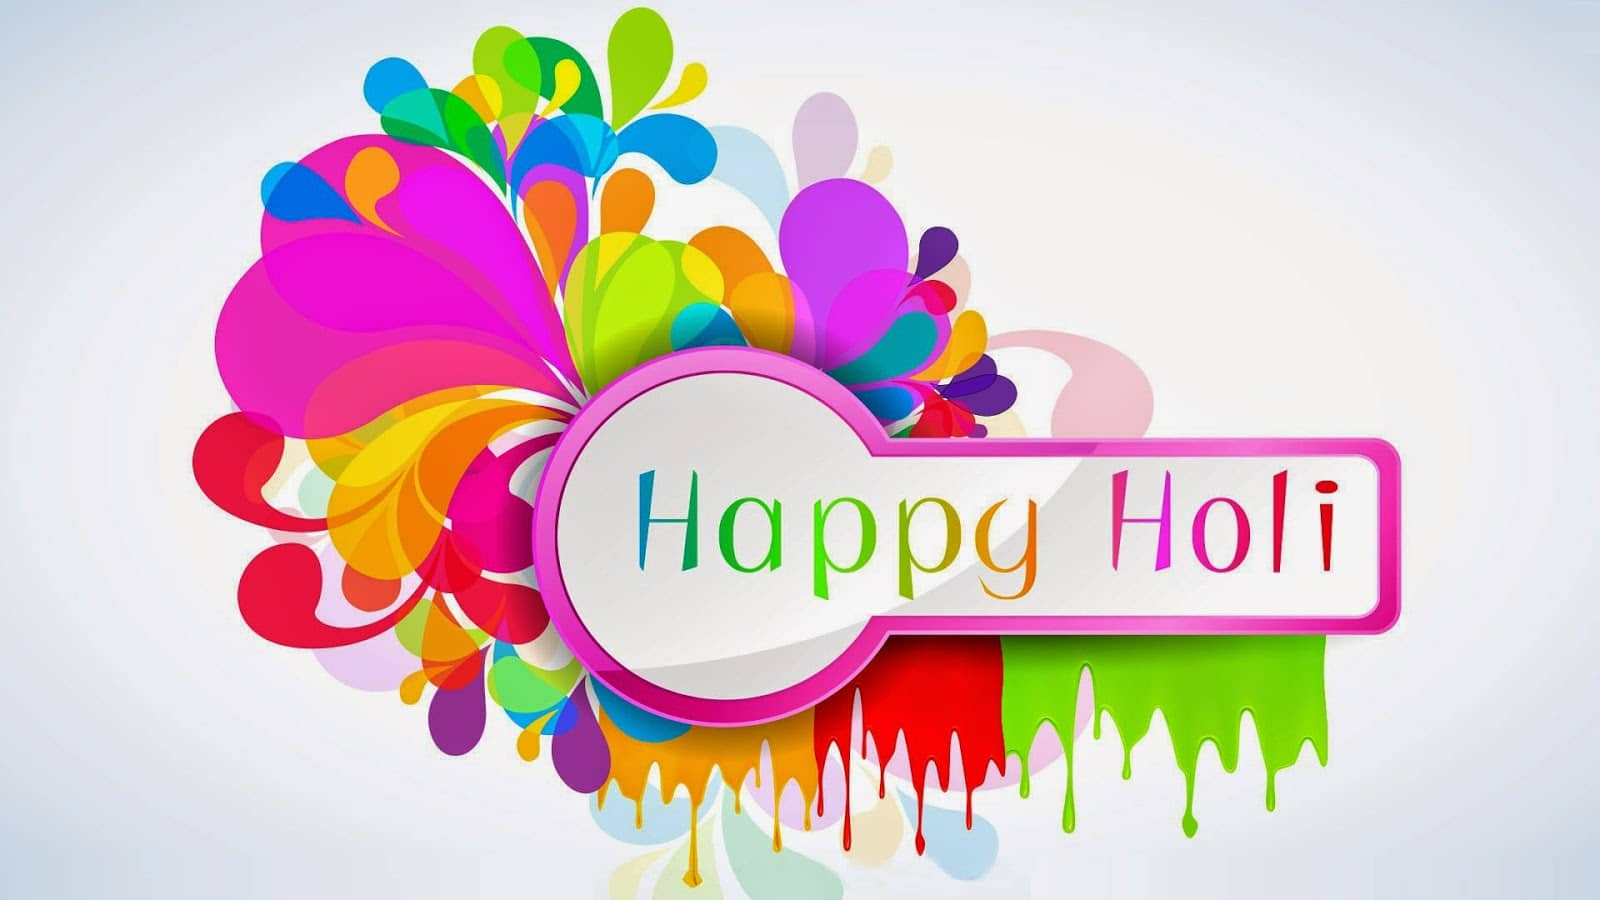 Happy Holi HD Image 2018 For Facebook And Whatsapp Download